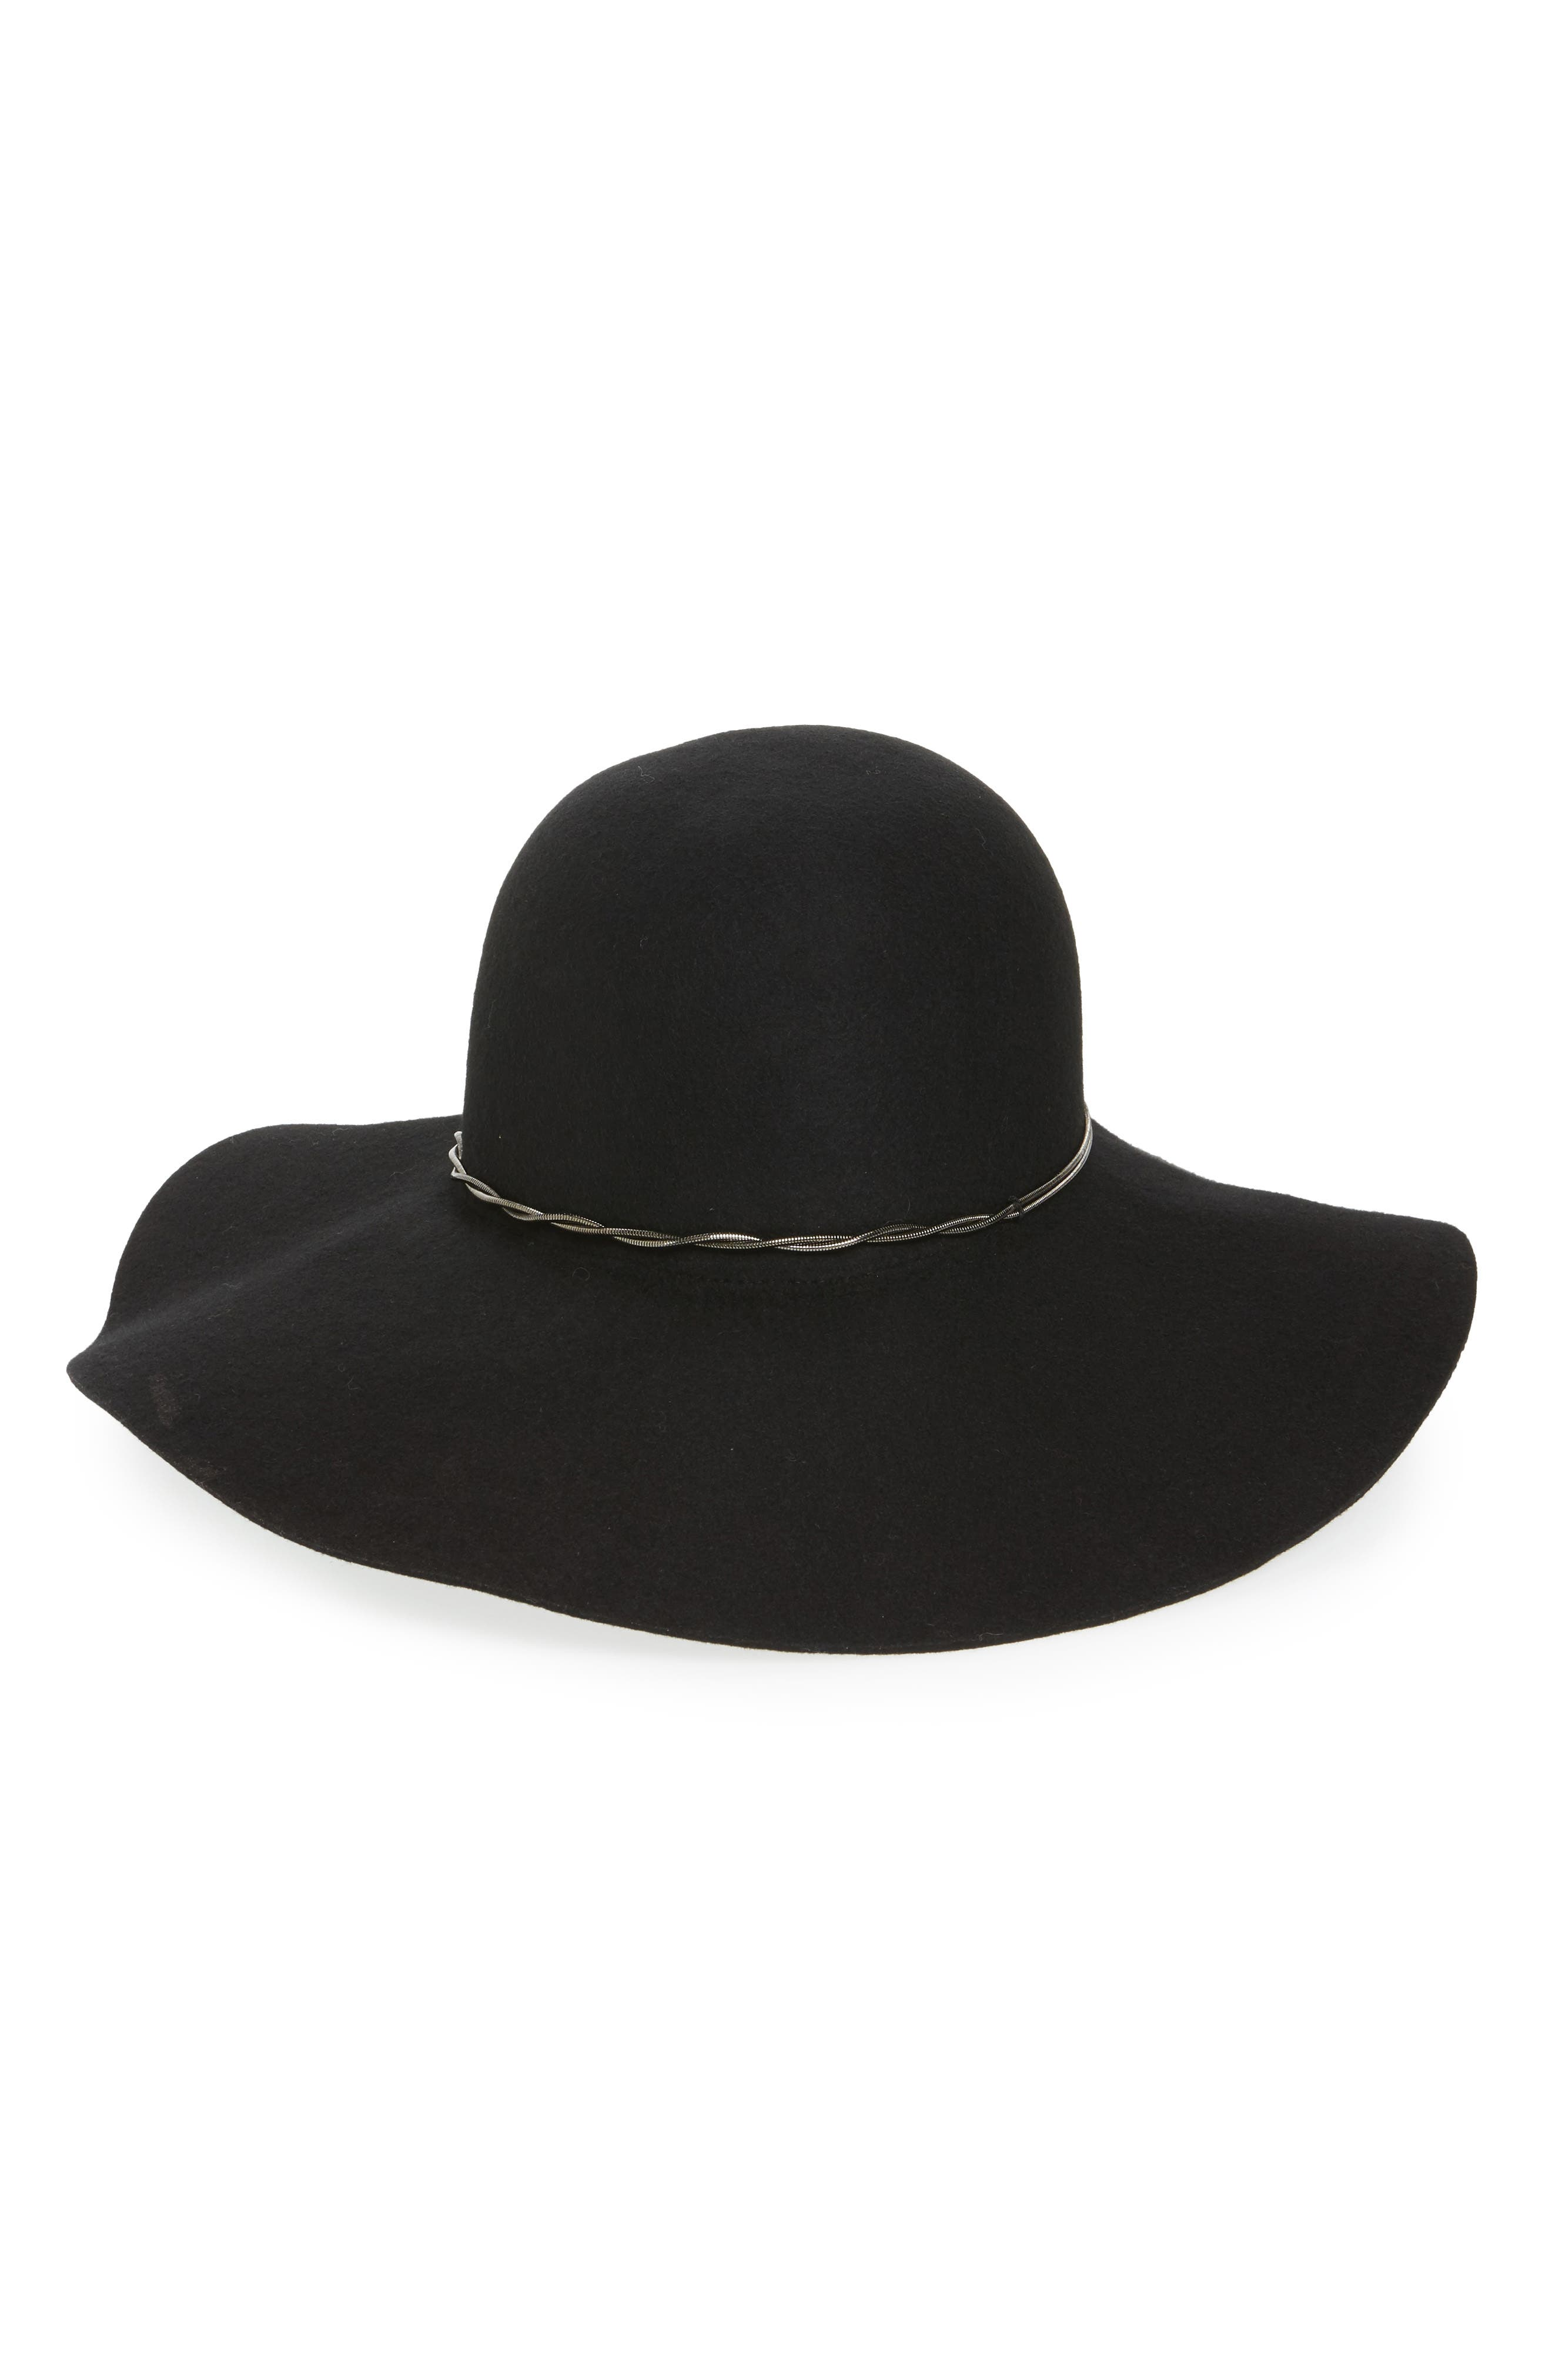 HALOGEN<SUP>®</SUP>, Chain Band Floppy Hat, Main thumbnail 1, color, 001